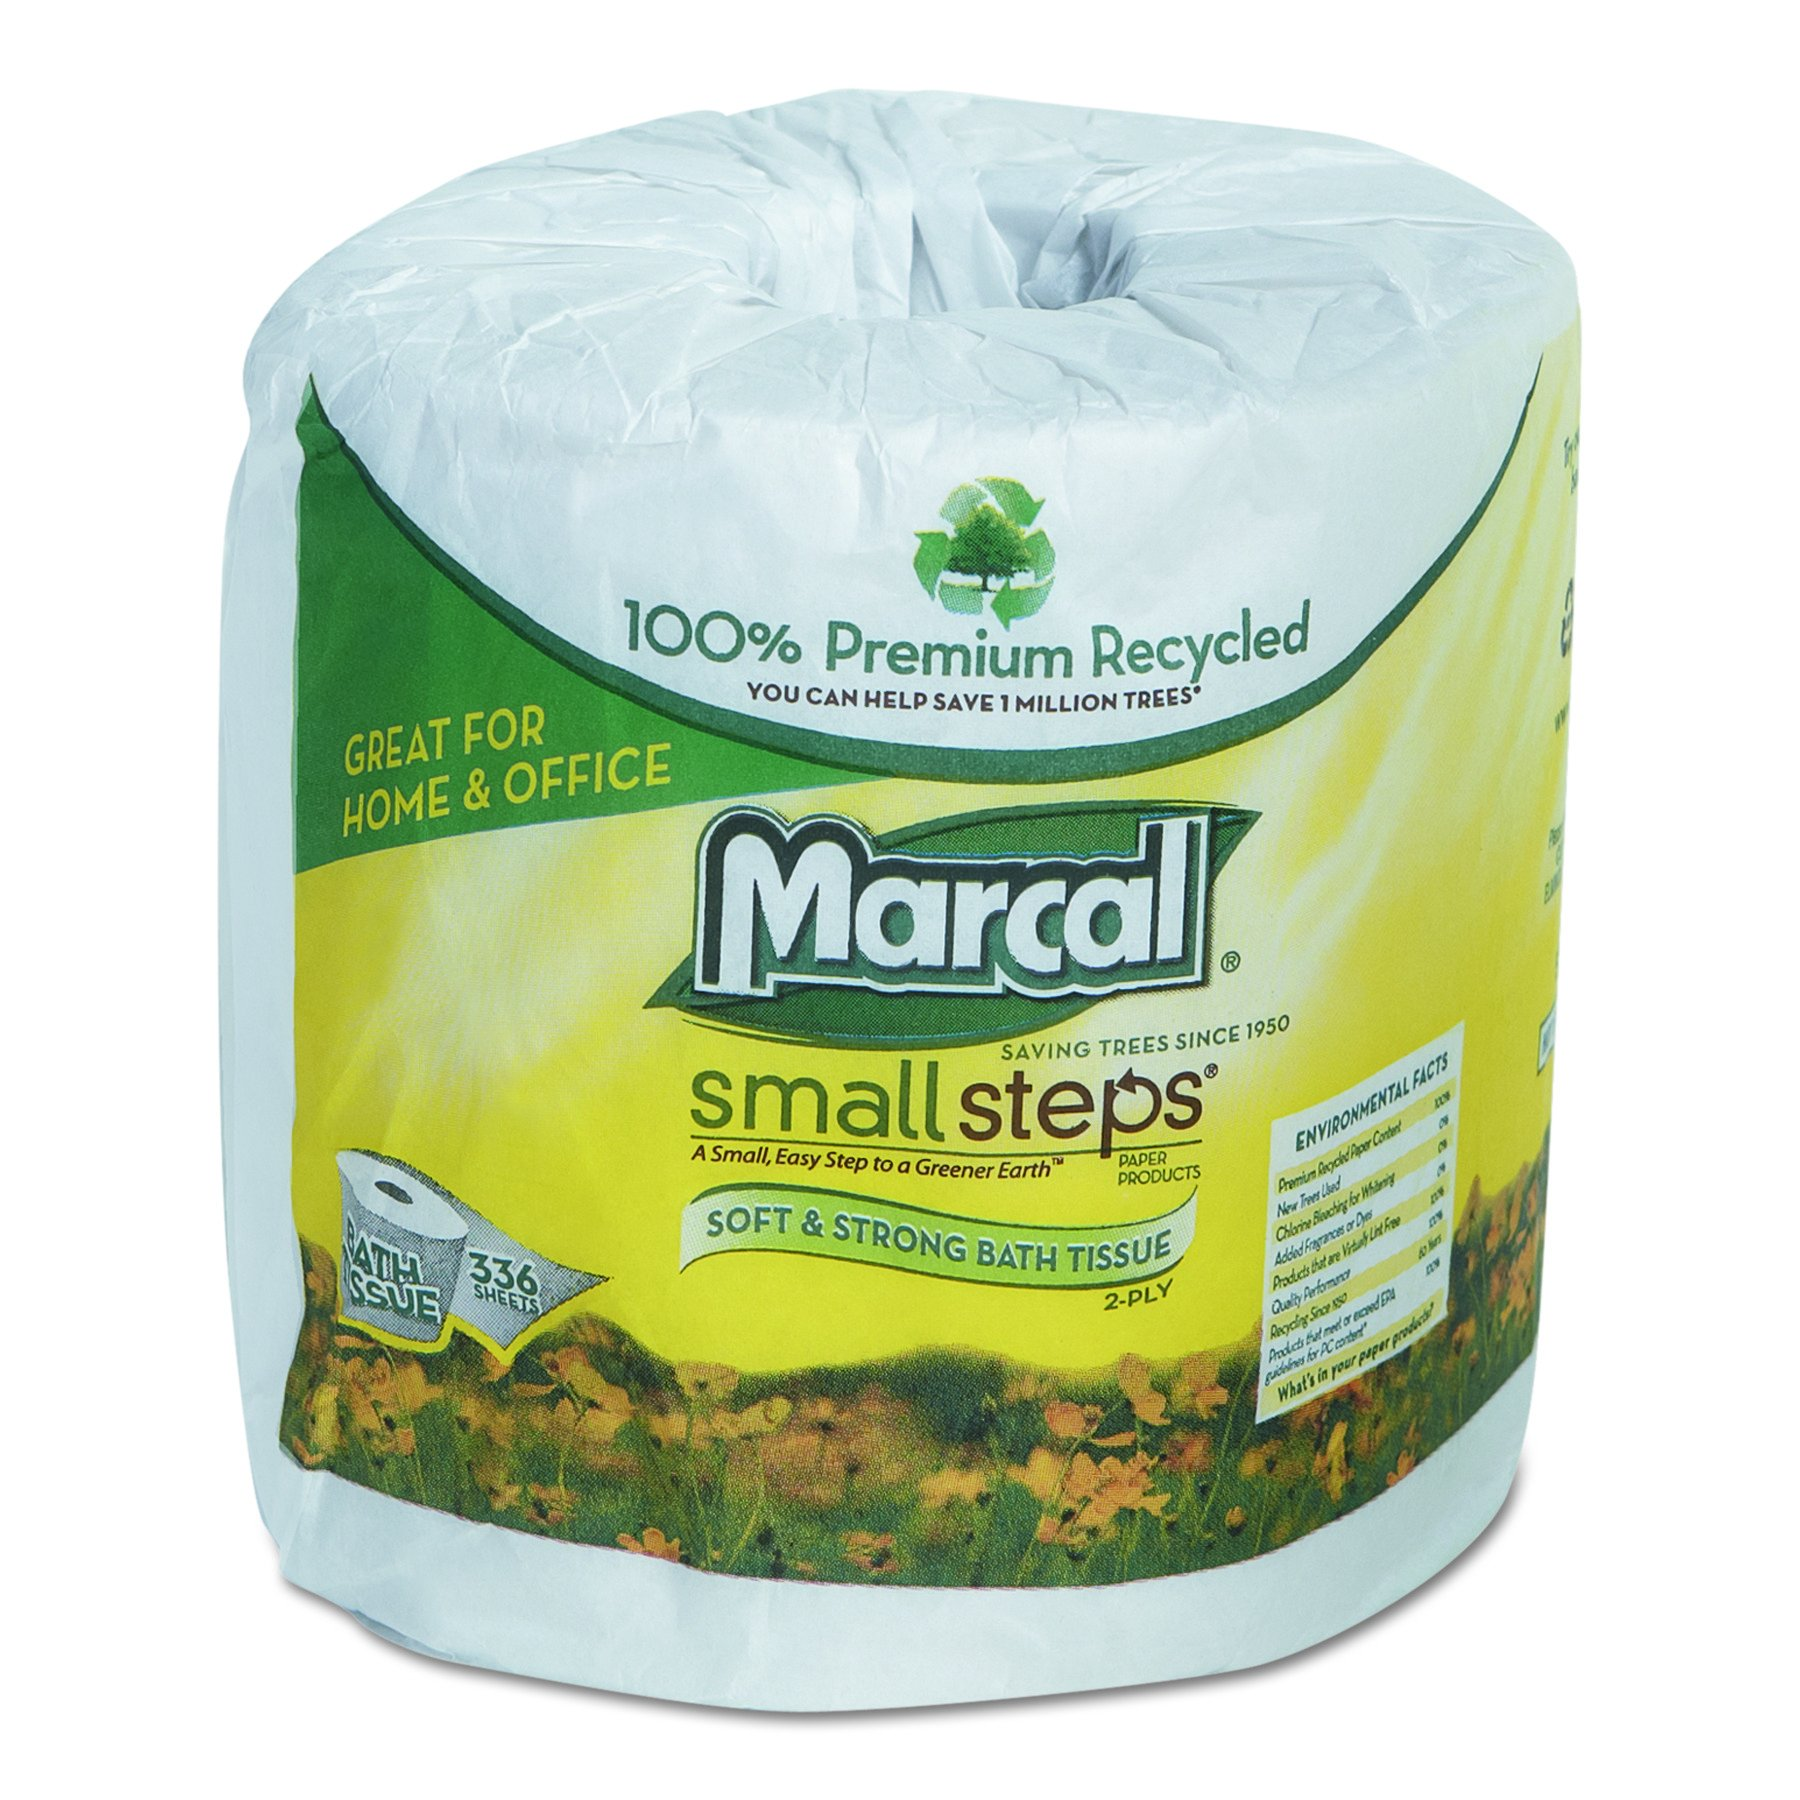 Marcal Toilet Paper 100% Recycled - 2 Ply, White Bath Tissue, 336 Sheets Per Roll - 48 Rolls Per Bundle Green Seal Certified Toilet Paper 06073